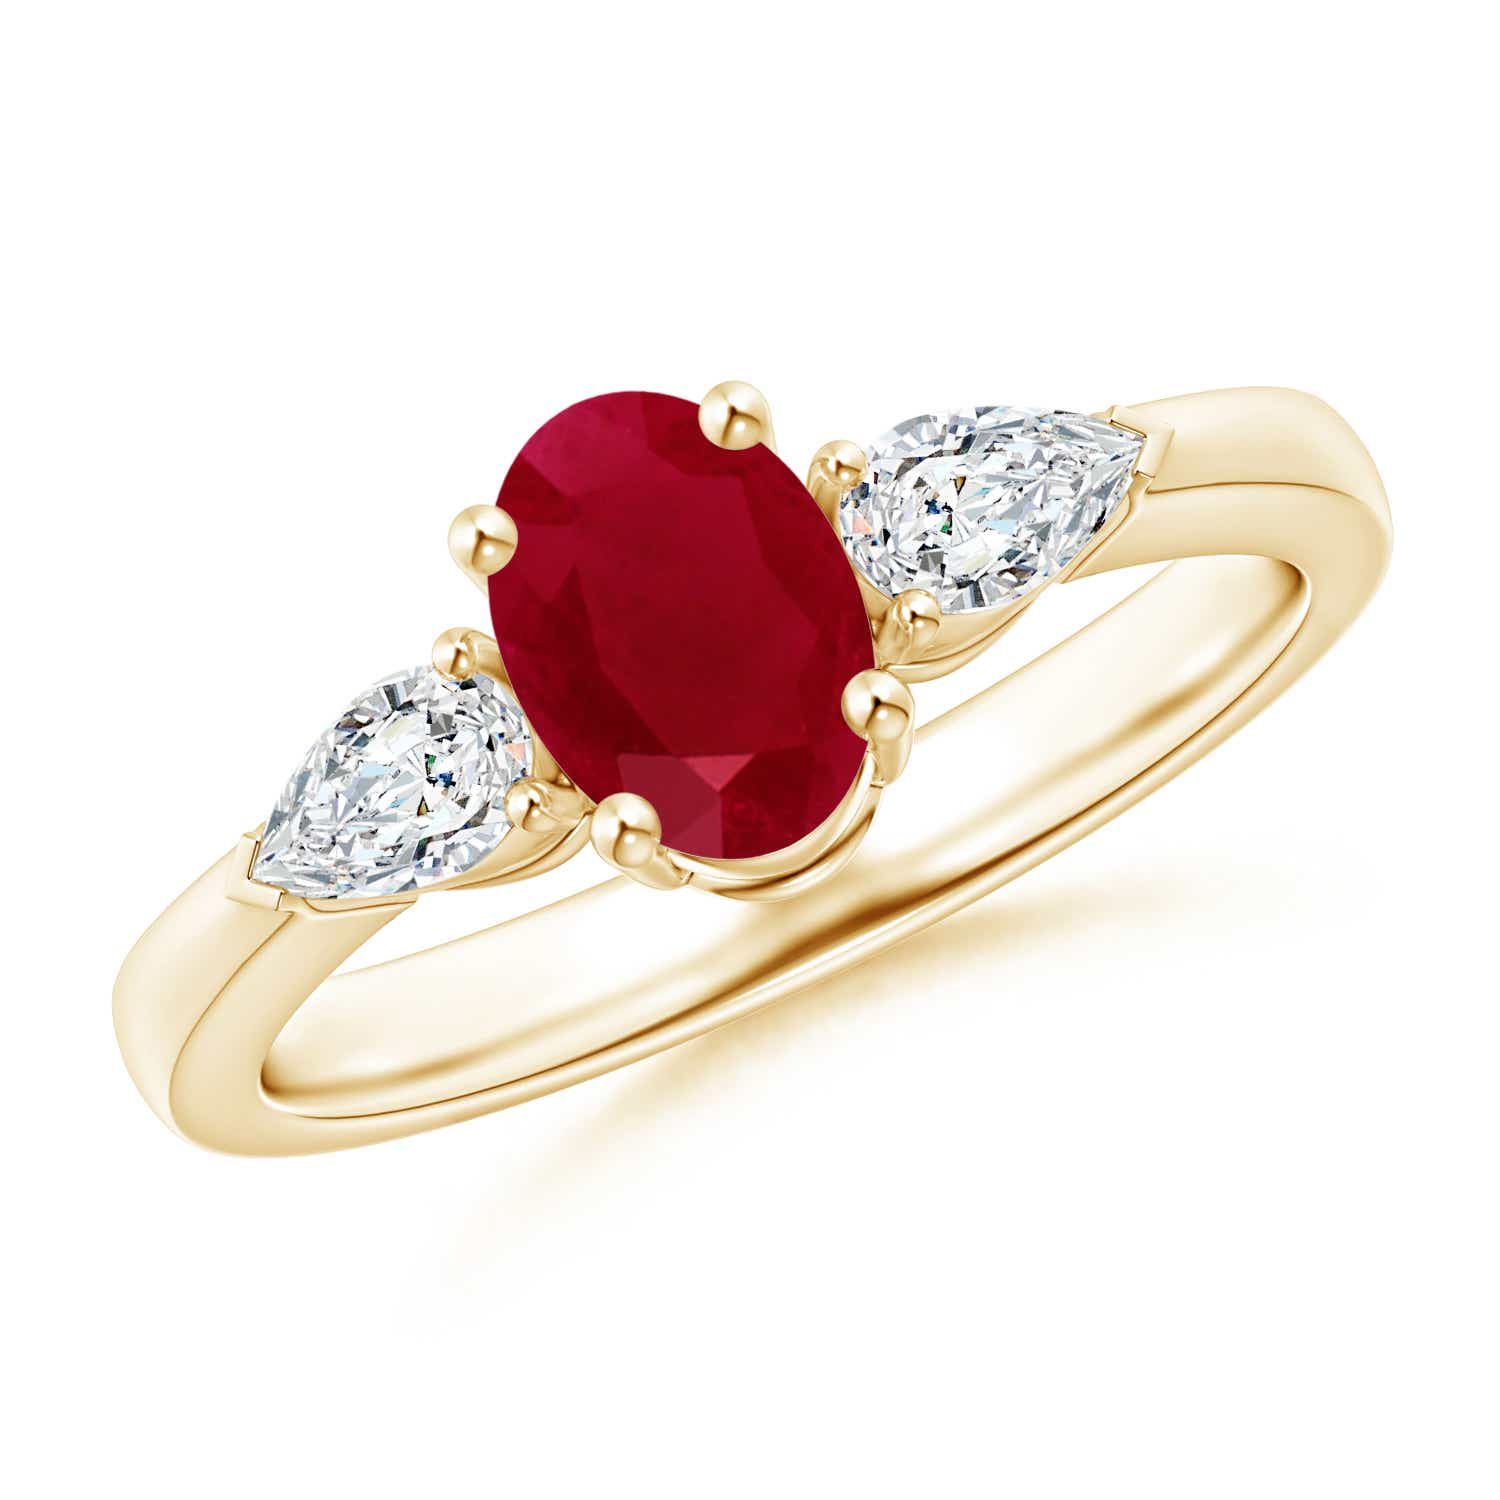 Angara Natural Ruby Three Stone Engagement Ring in White Gold RvbzPC4